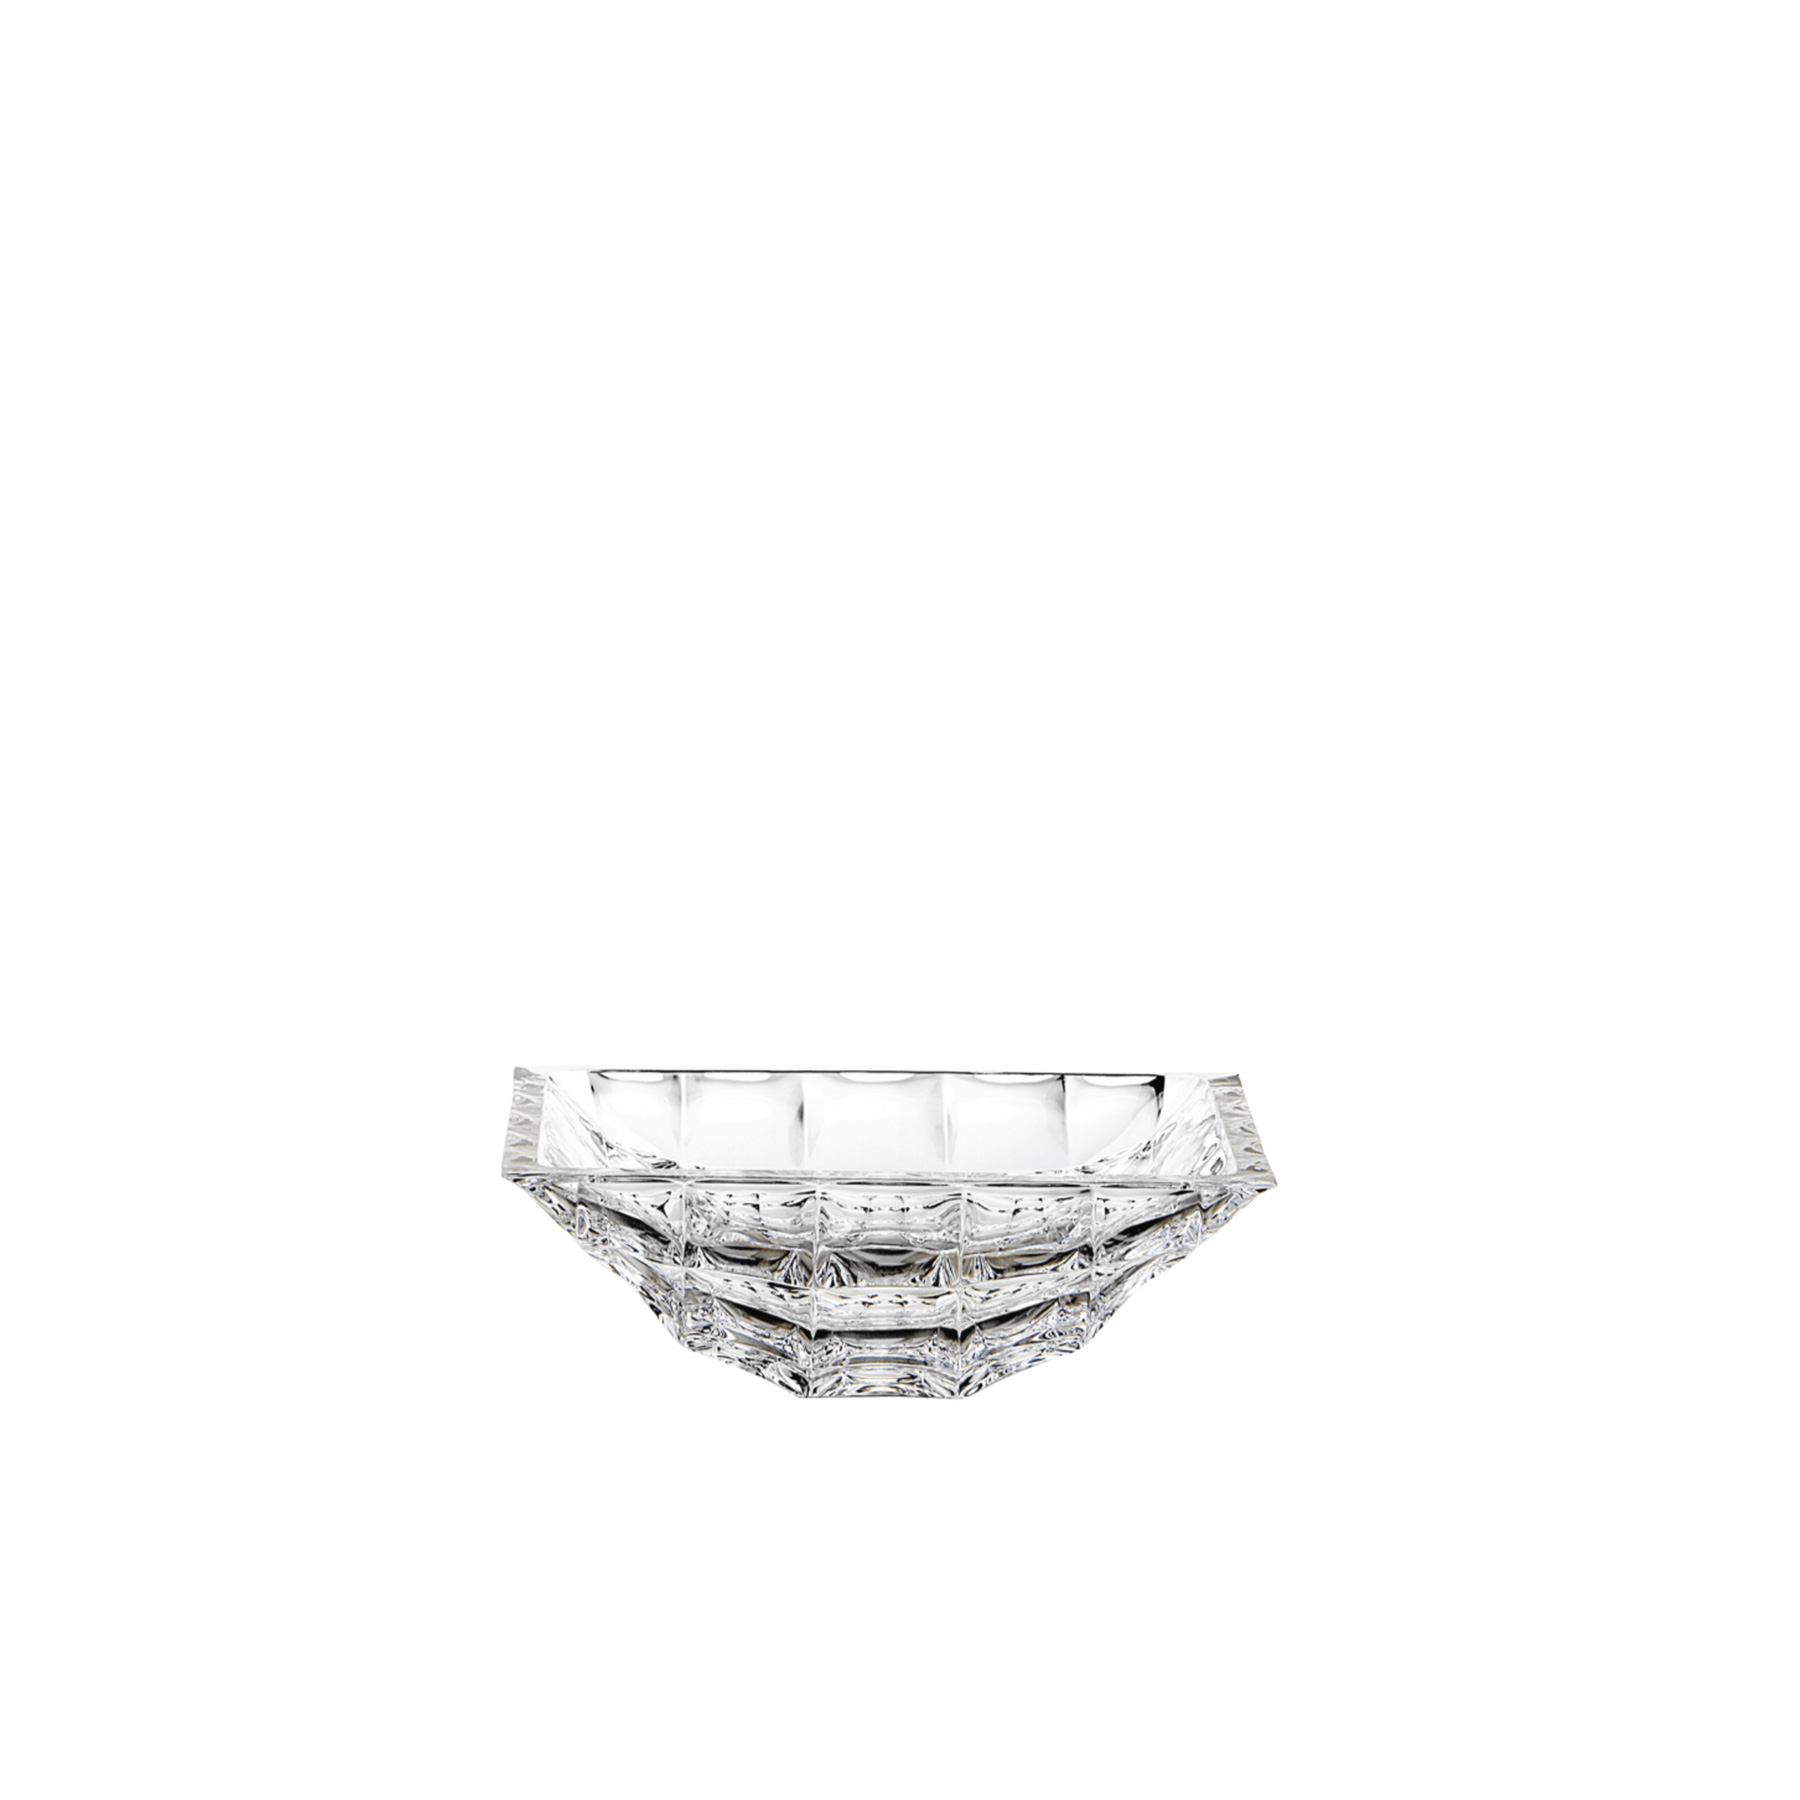 Diamante Crystal Centrepiece - 36A diamond-inspired hand-etched design by Sandro Bessi for ColleVilca. The majestic and classic allure of the centerpiece adds refinement to any table or console, due to the unique brilliance of the crystal, exploited at its best in this design.